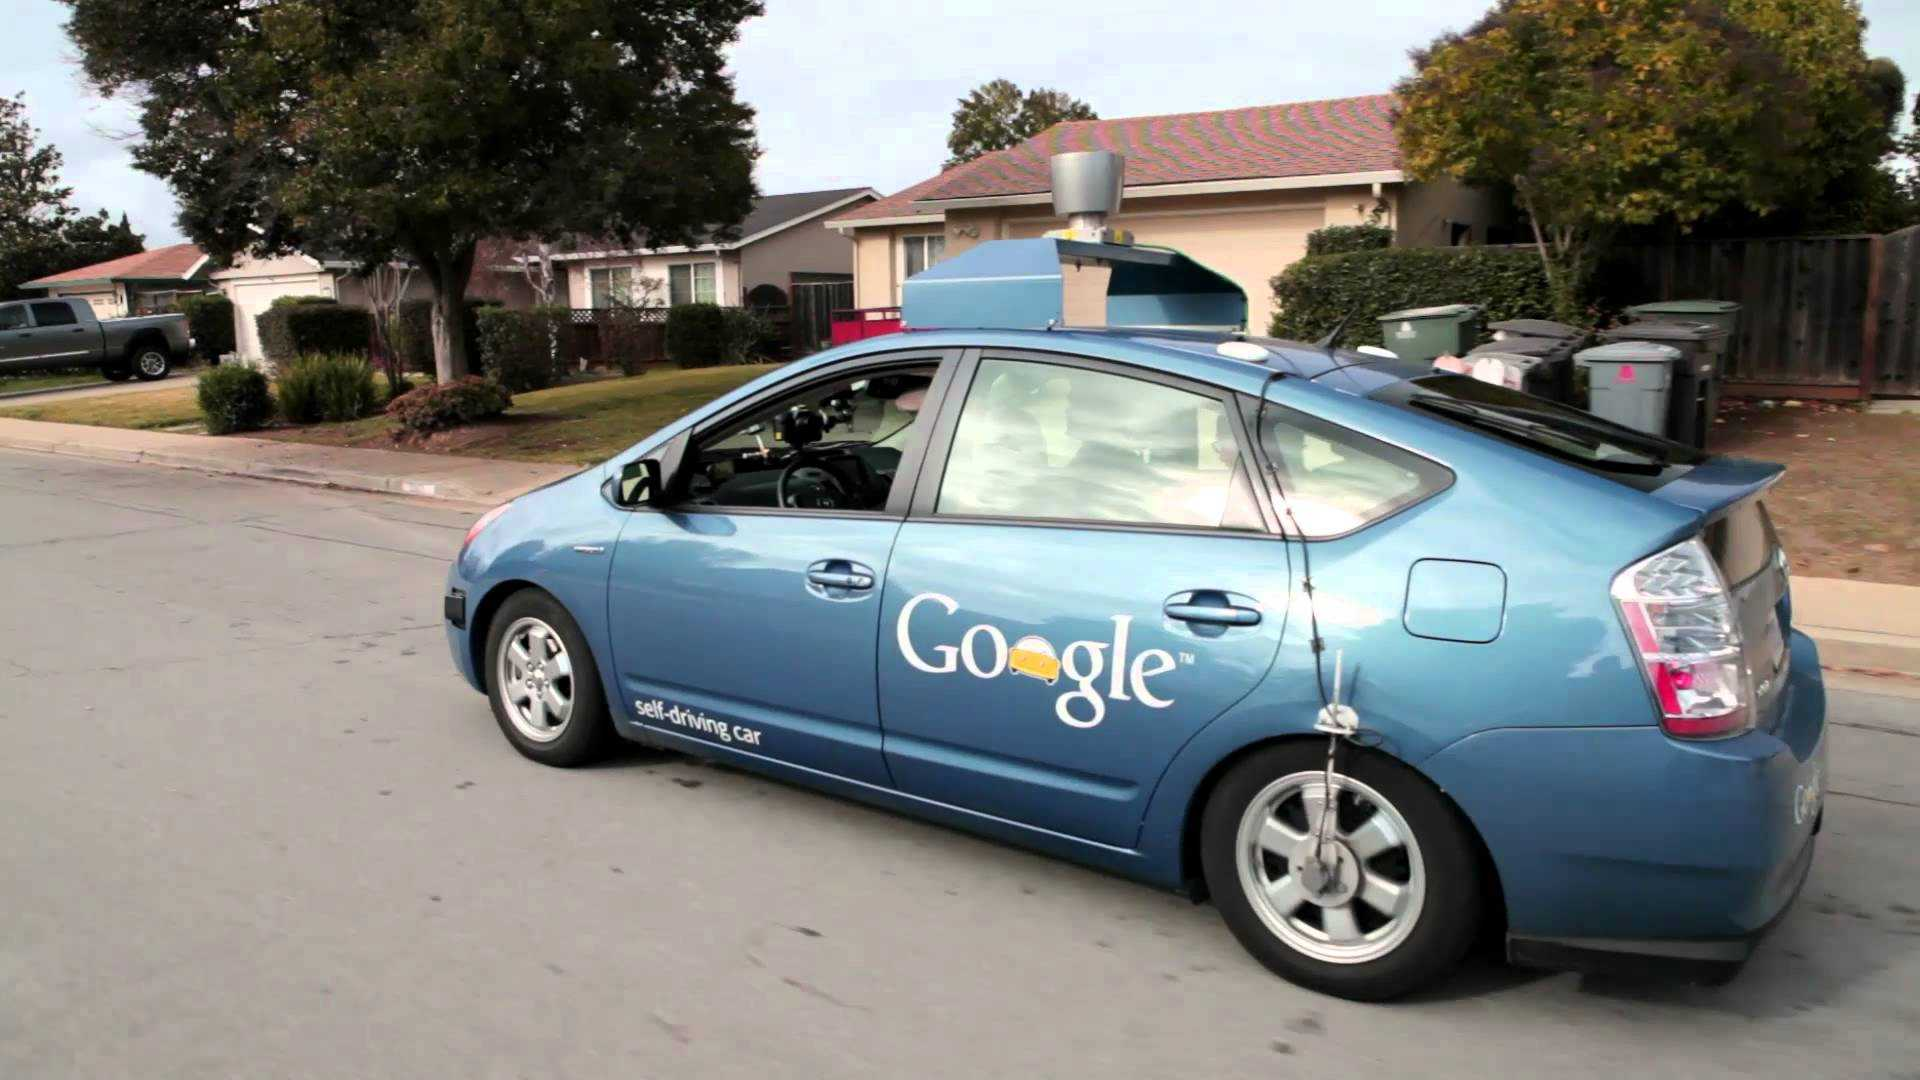 Google working on wireless charging for autonomous cars